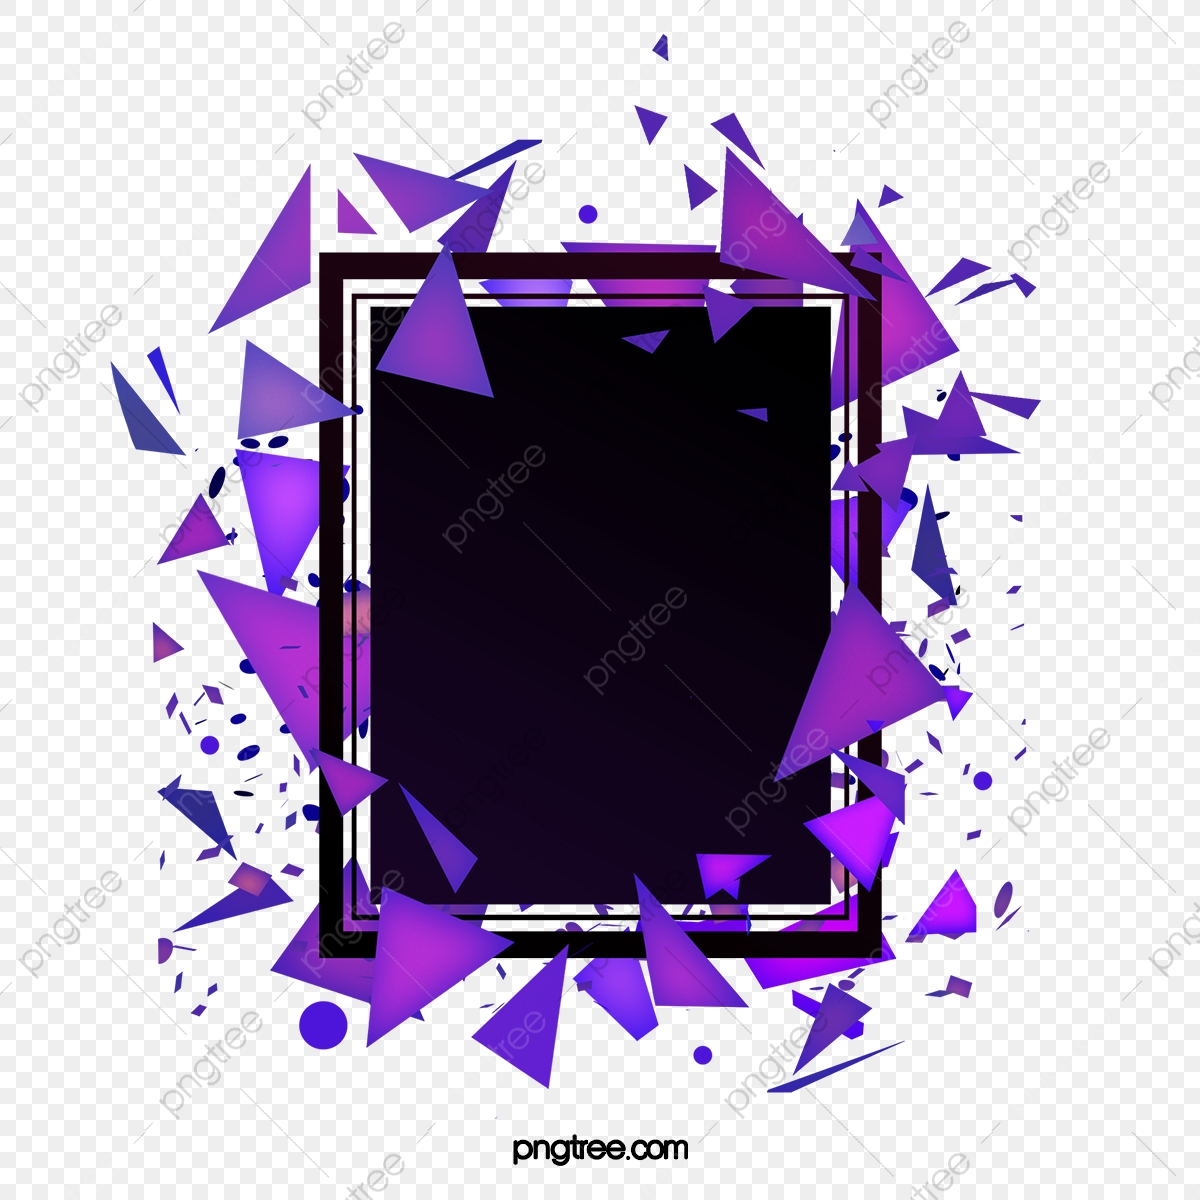 Download Fragment Decoration Party Geometric Border Geometric Frame Abstract Png Transparent Clipart Image And Psd File For Free Download